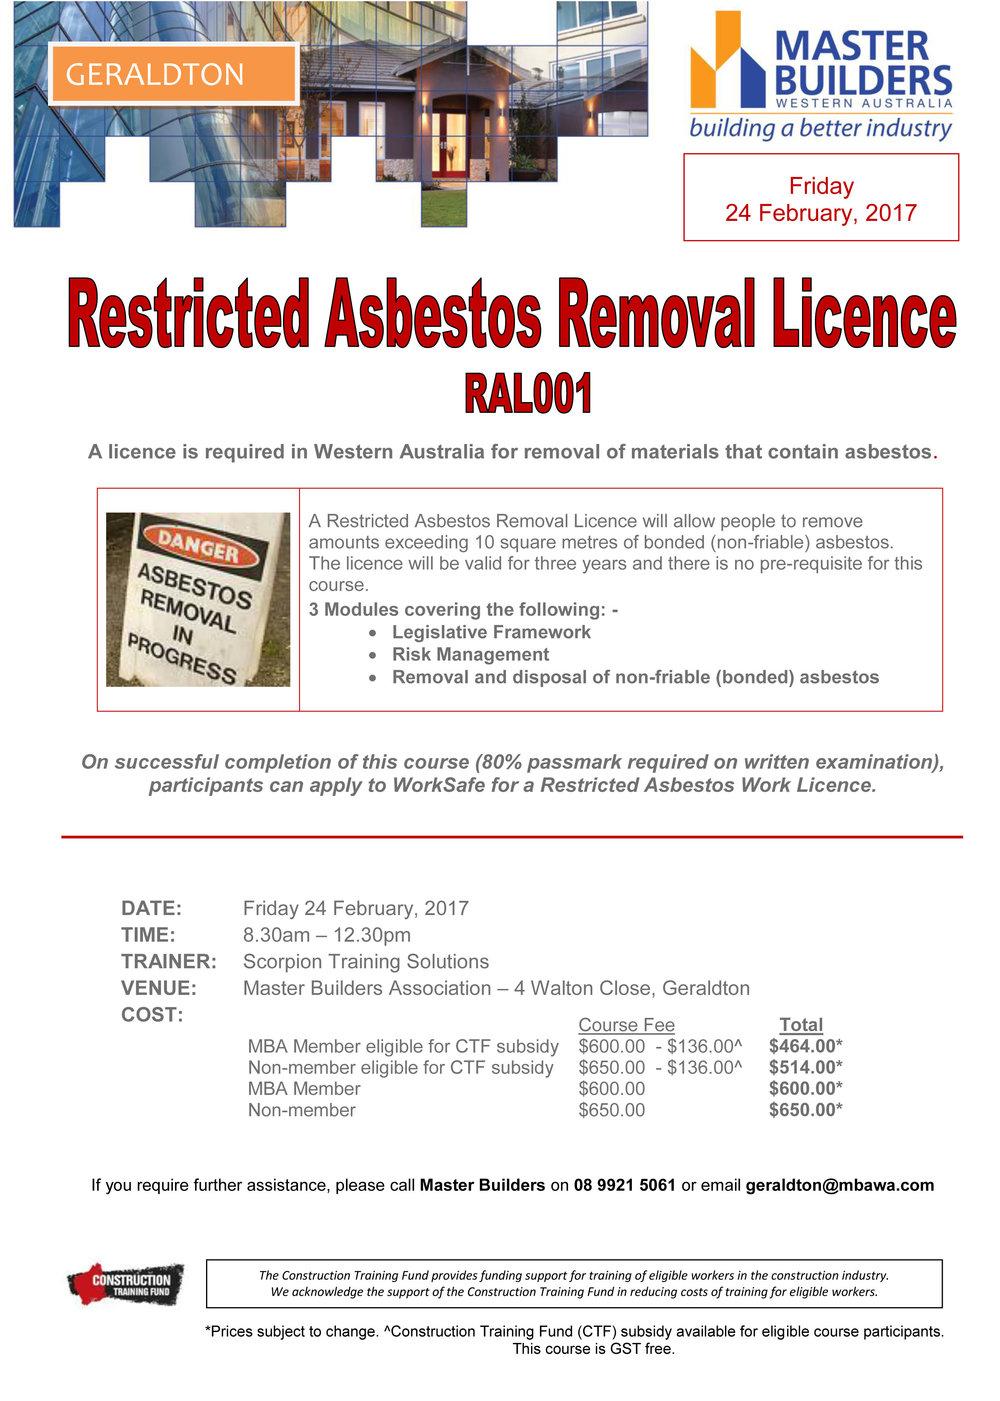 17967424_Restricted asbestos removal licence - 24 Feb-1.jpg